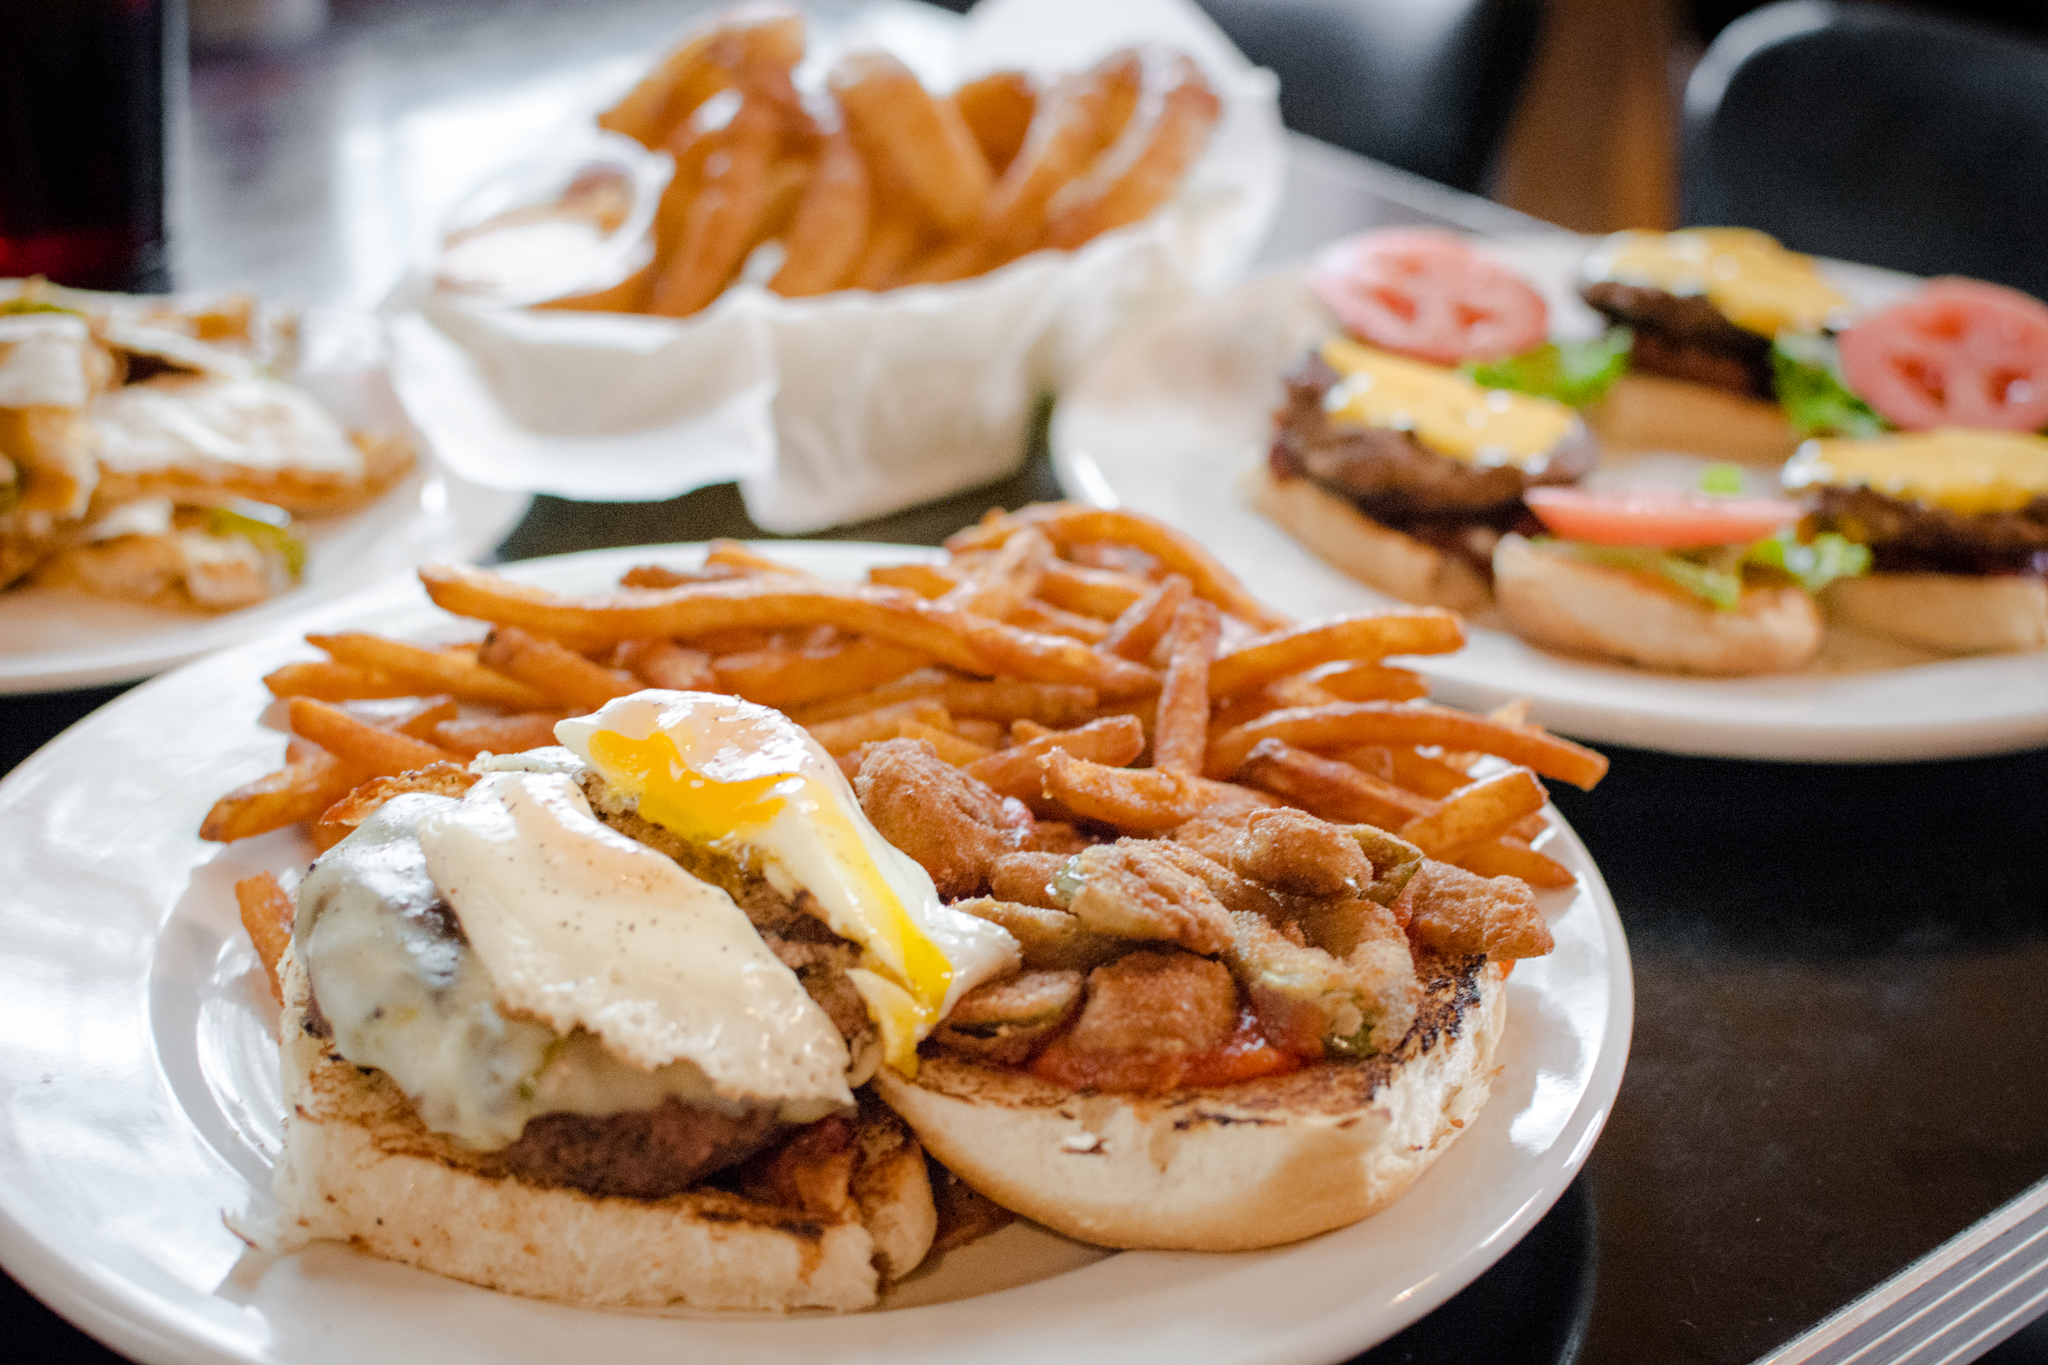 Broaddus Burger with Fried Egg